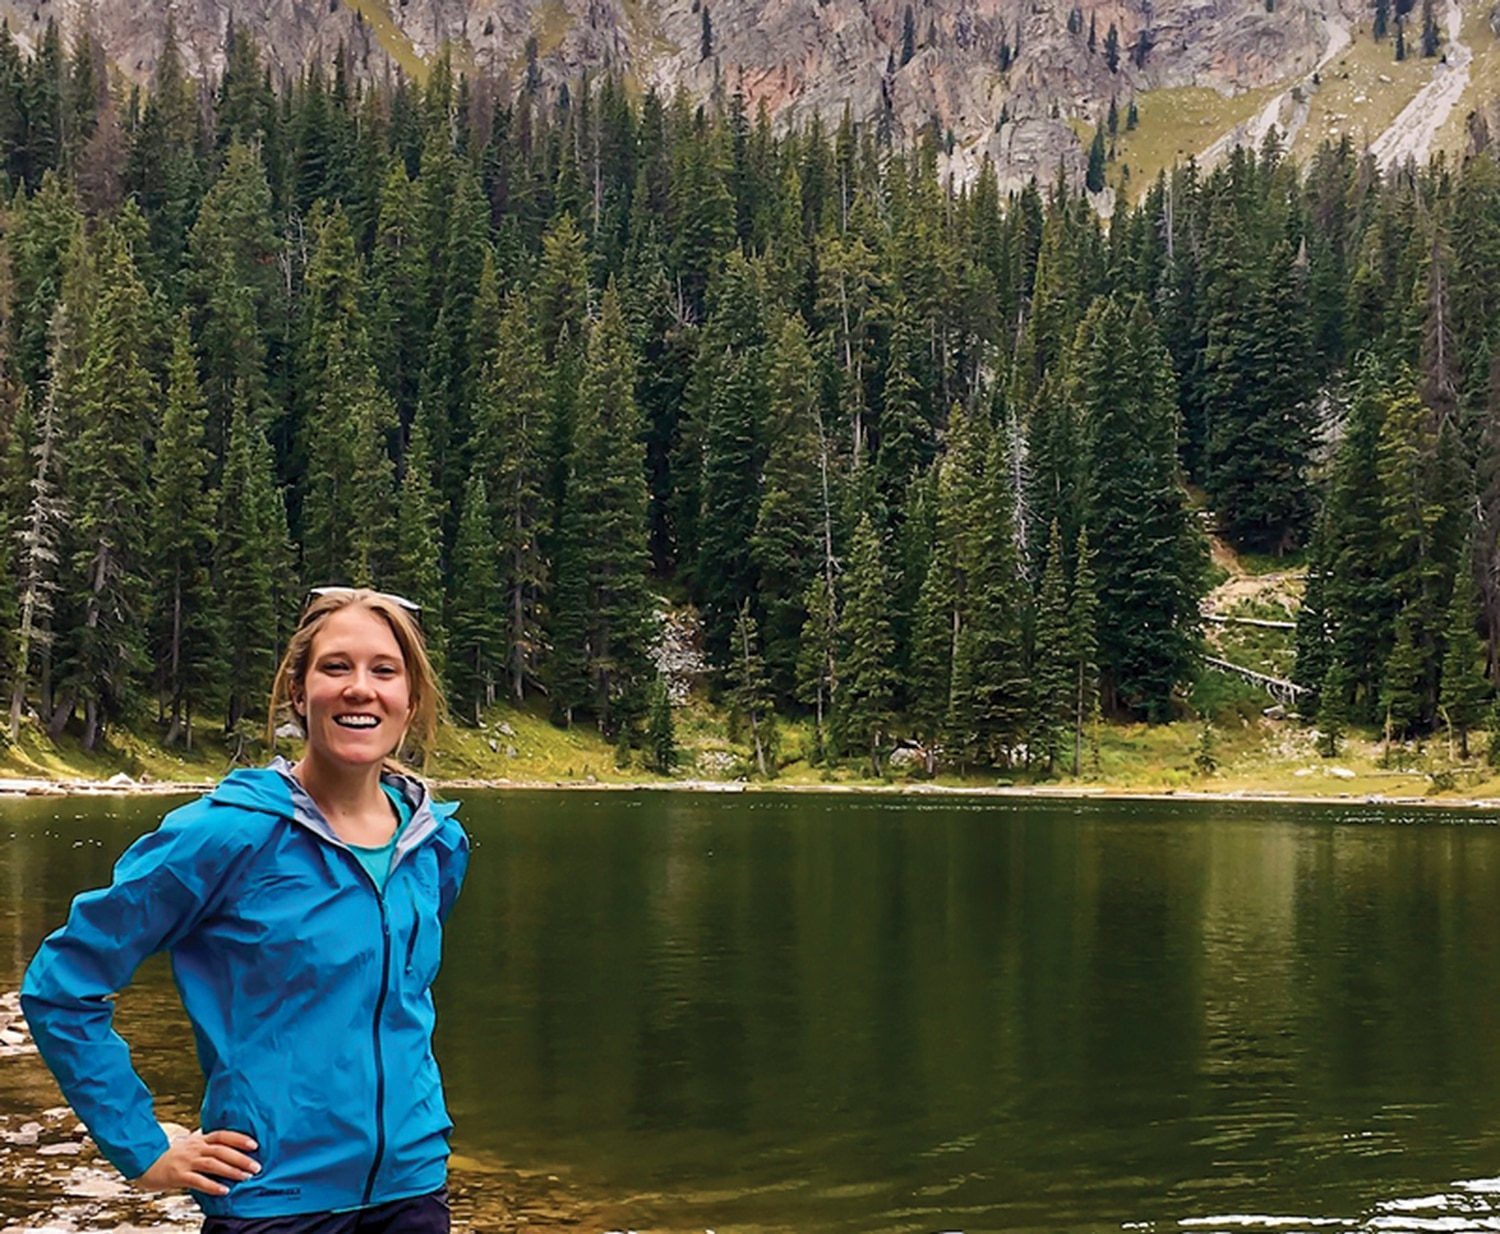 Axie Navas is the new director of the state's new Outdoor Recreation Division, charged with helping various stakeholders capitalize on the state's resources for economic, environmental and equity gains.